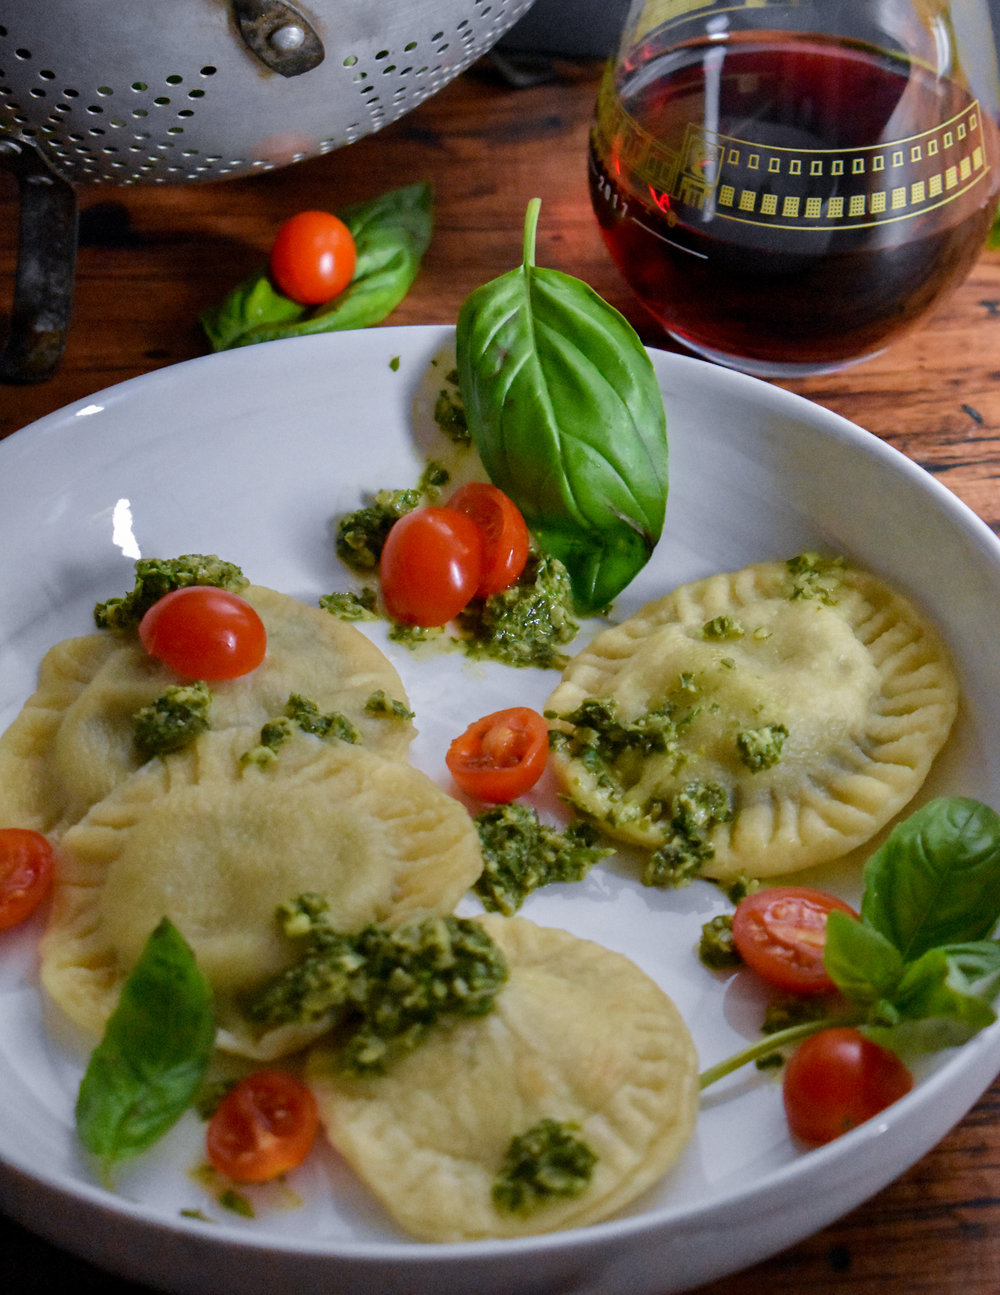 11. Finally, place the ravioli in a boiling pot of water for 3 minutes. Drain. Serve warm with pesto and grape tomatoes over top. Enjoy!